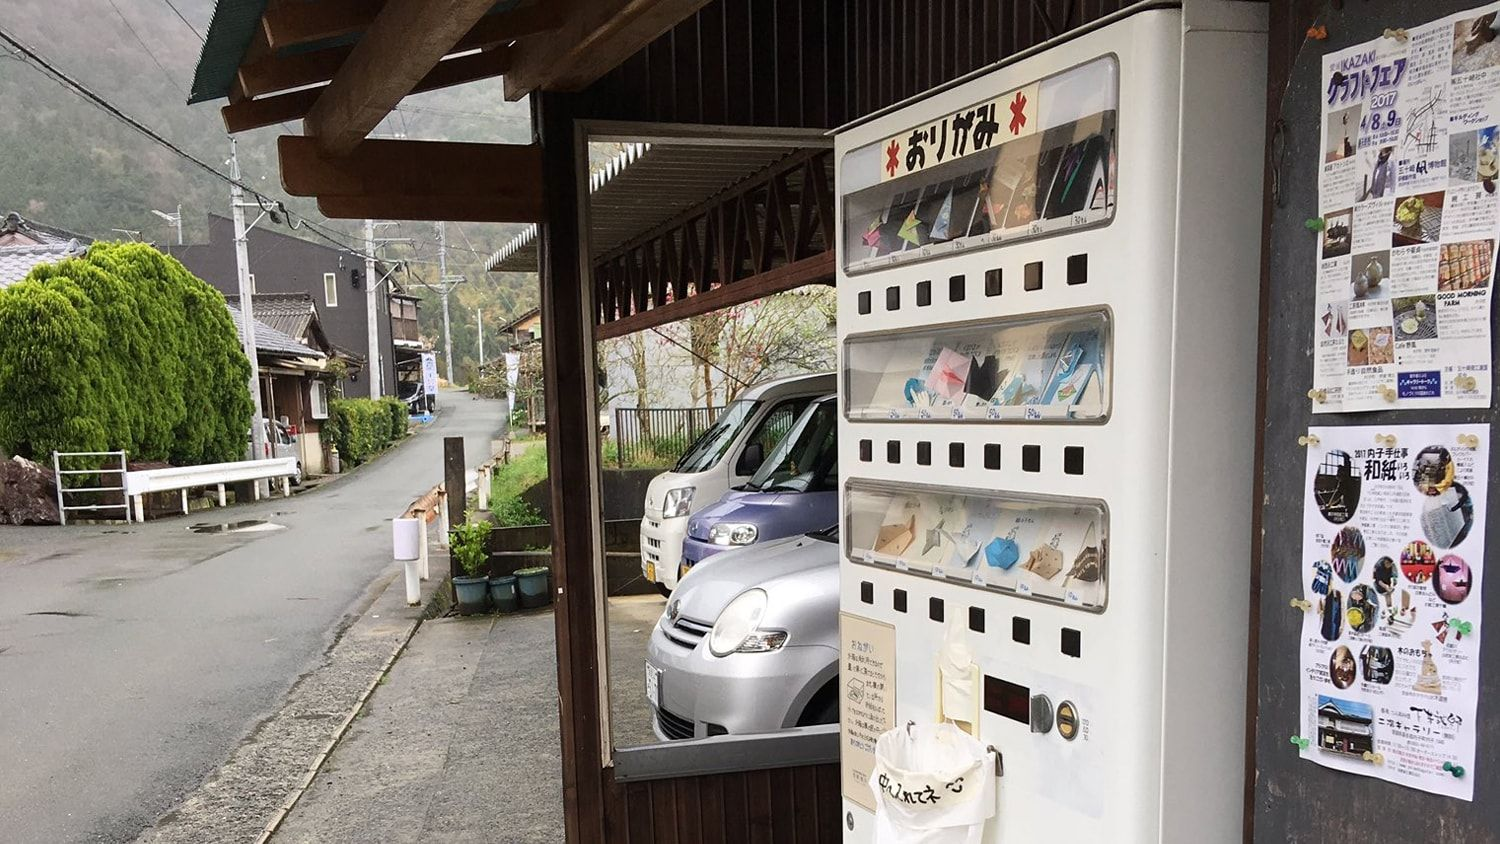 Adorable vending machine selling origami turns up in rural